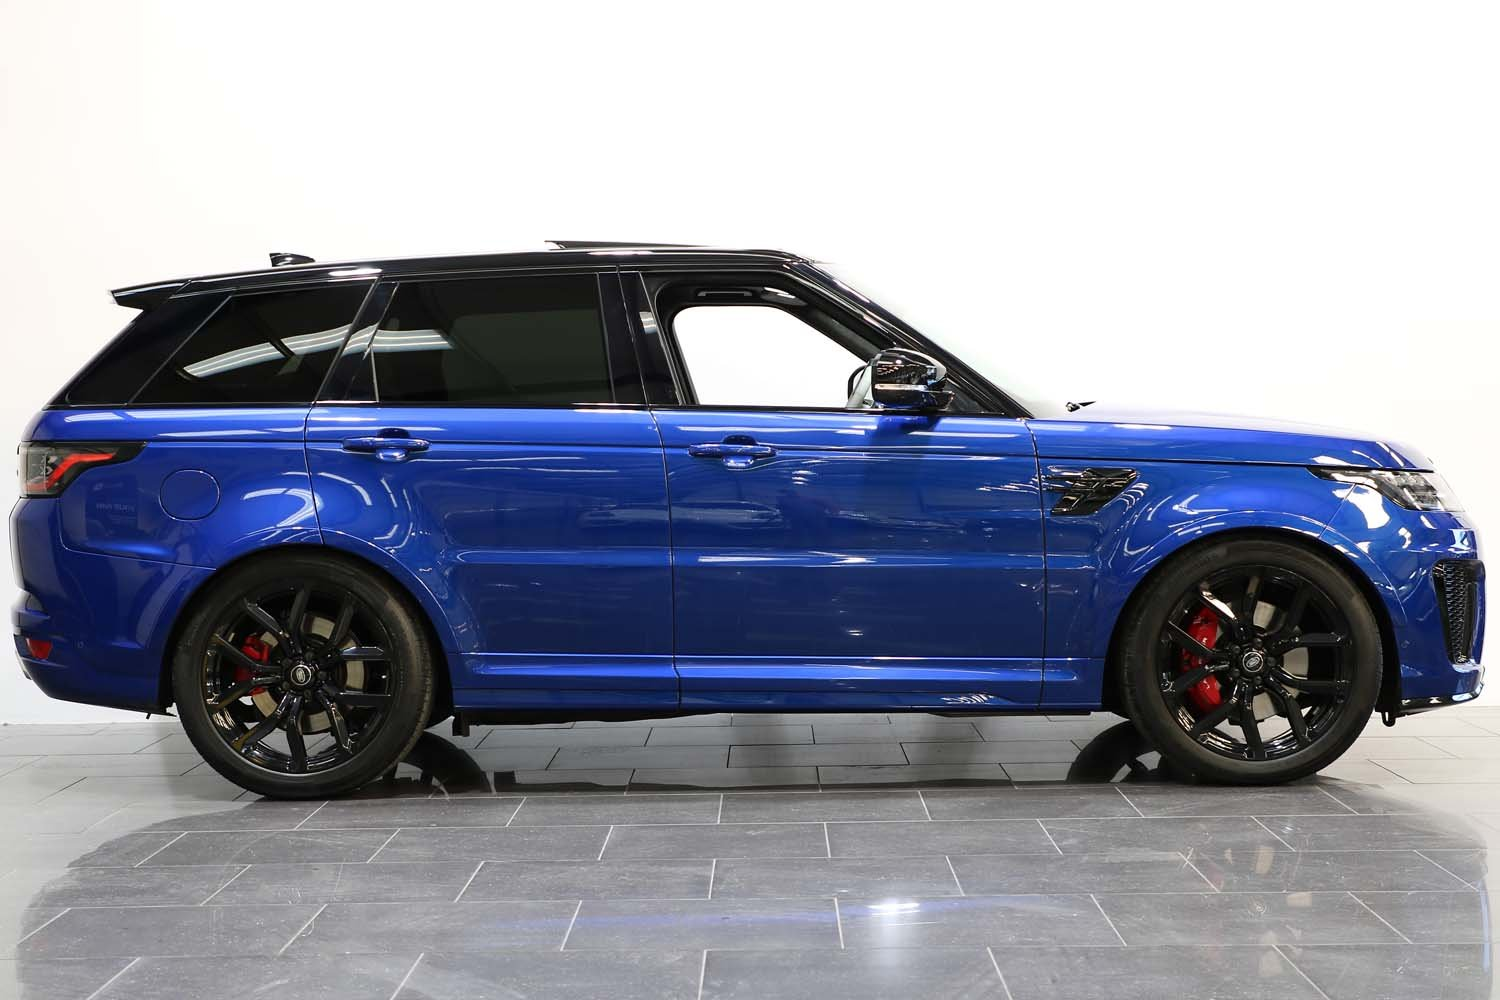 2018 18 18 RANGE ROVER 5.0 V8 SUPERCHARGED SVR AUTO For Sale (picture 3 of 6)